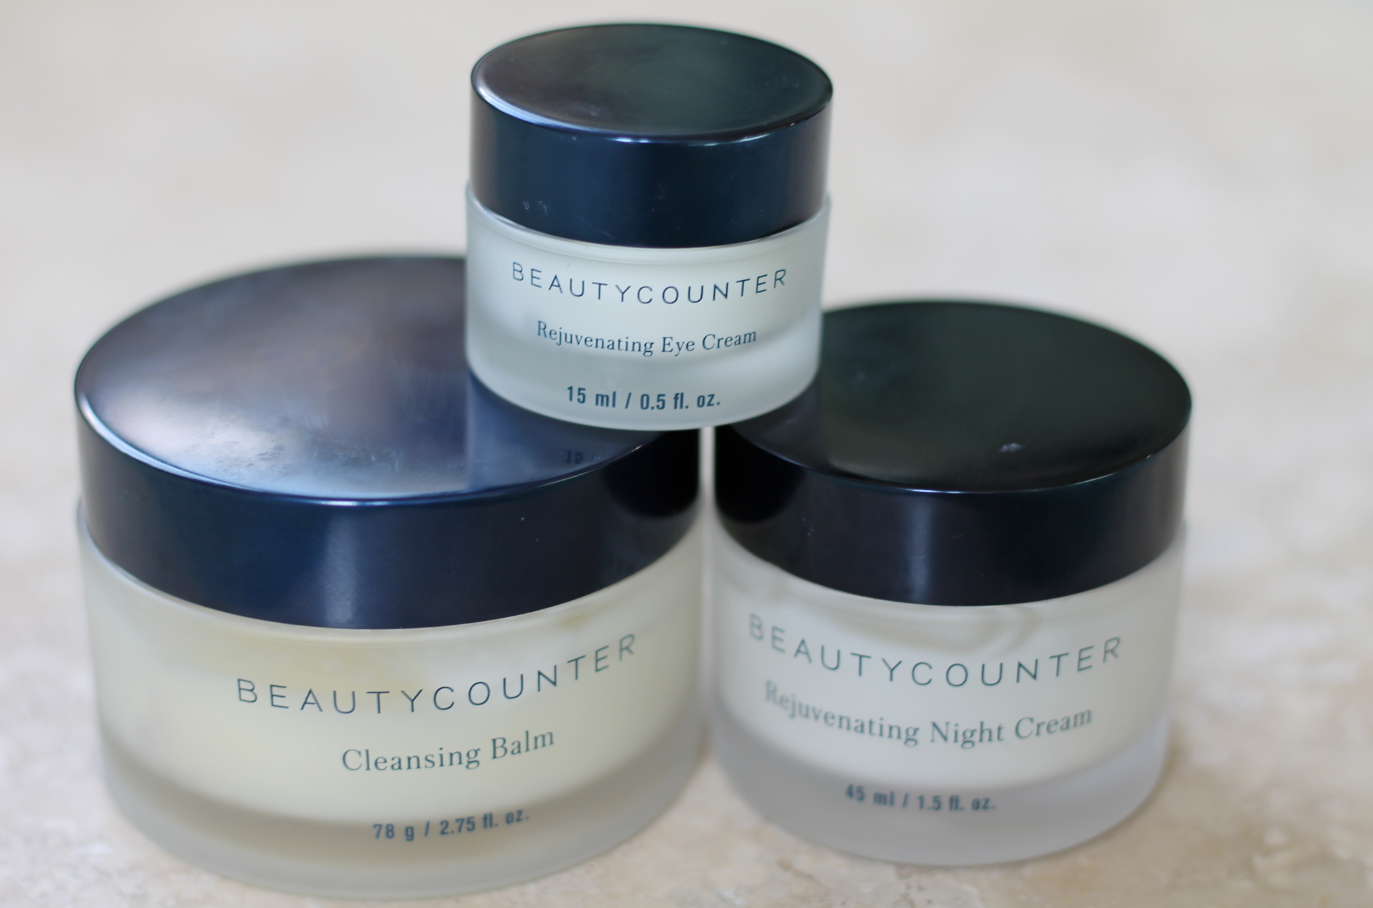 Beautycounter Cleansing Balm, Rejuvenating Night Cream, Rejuvenating Eye Cream